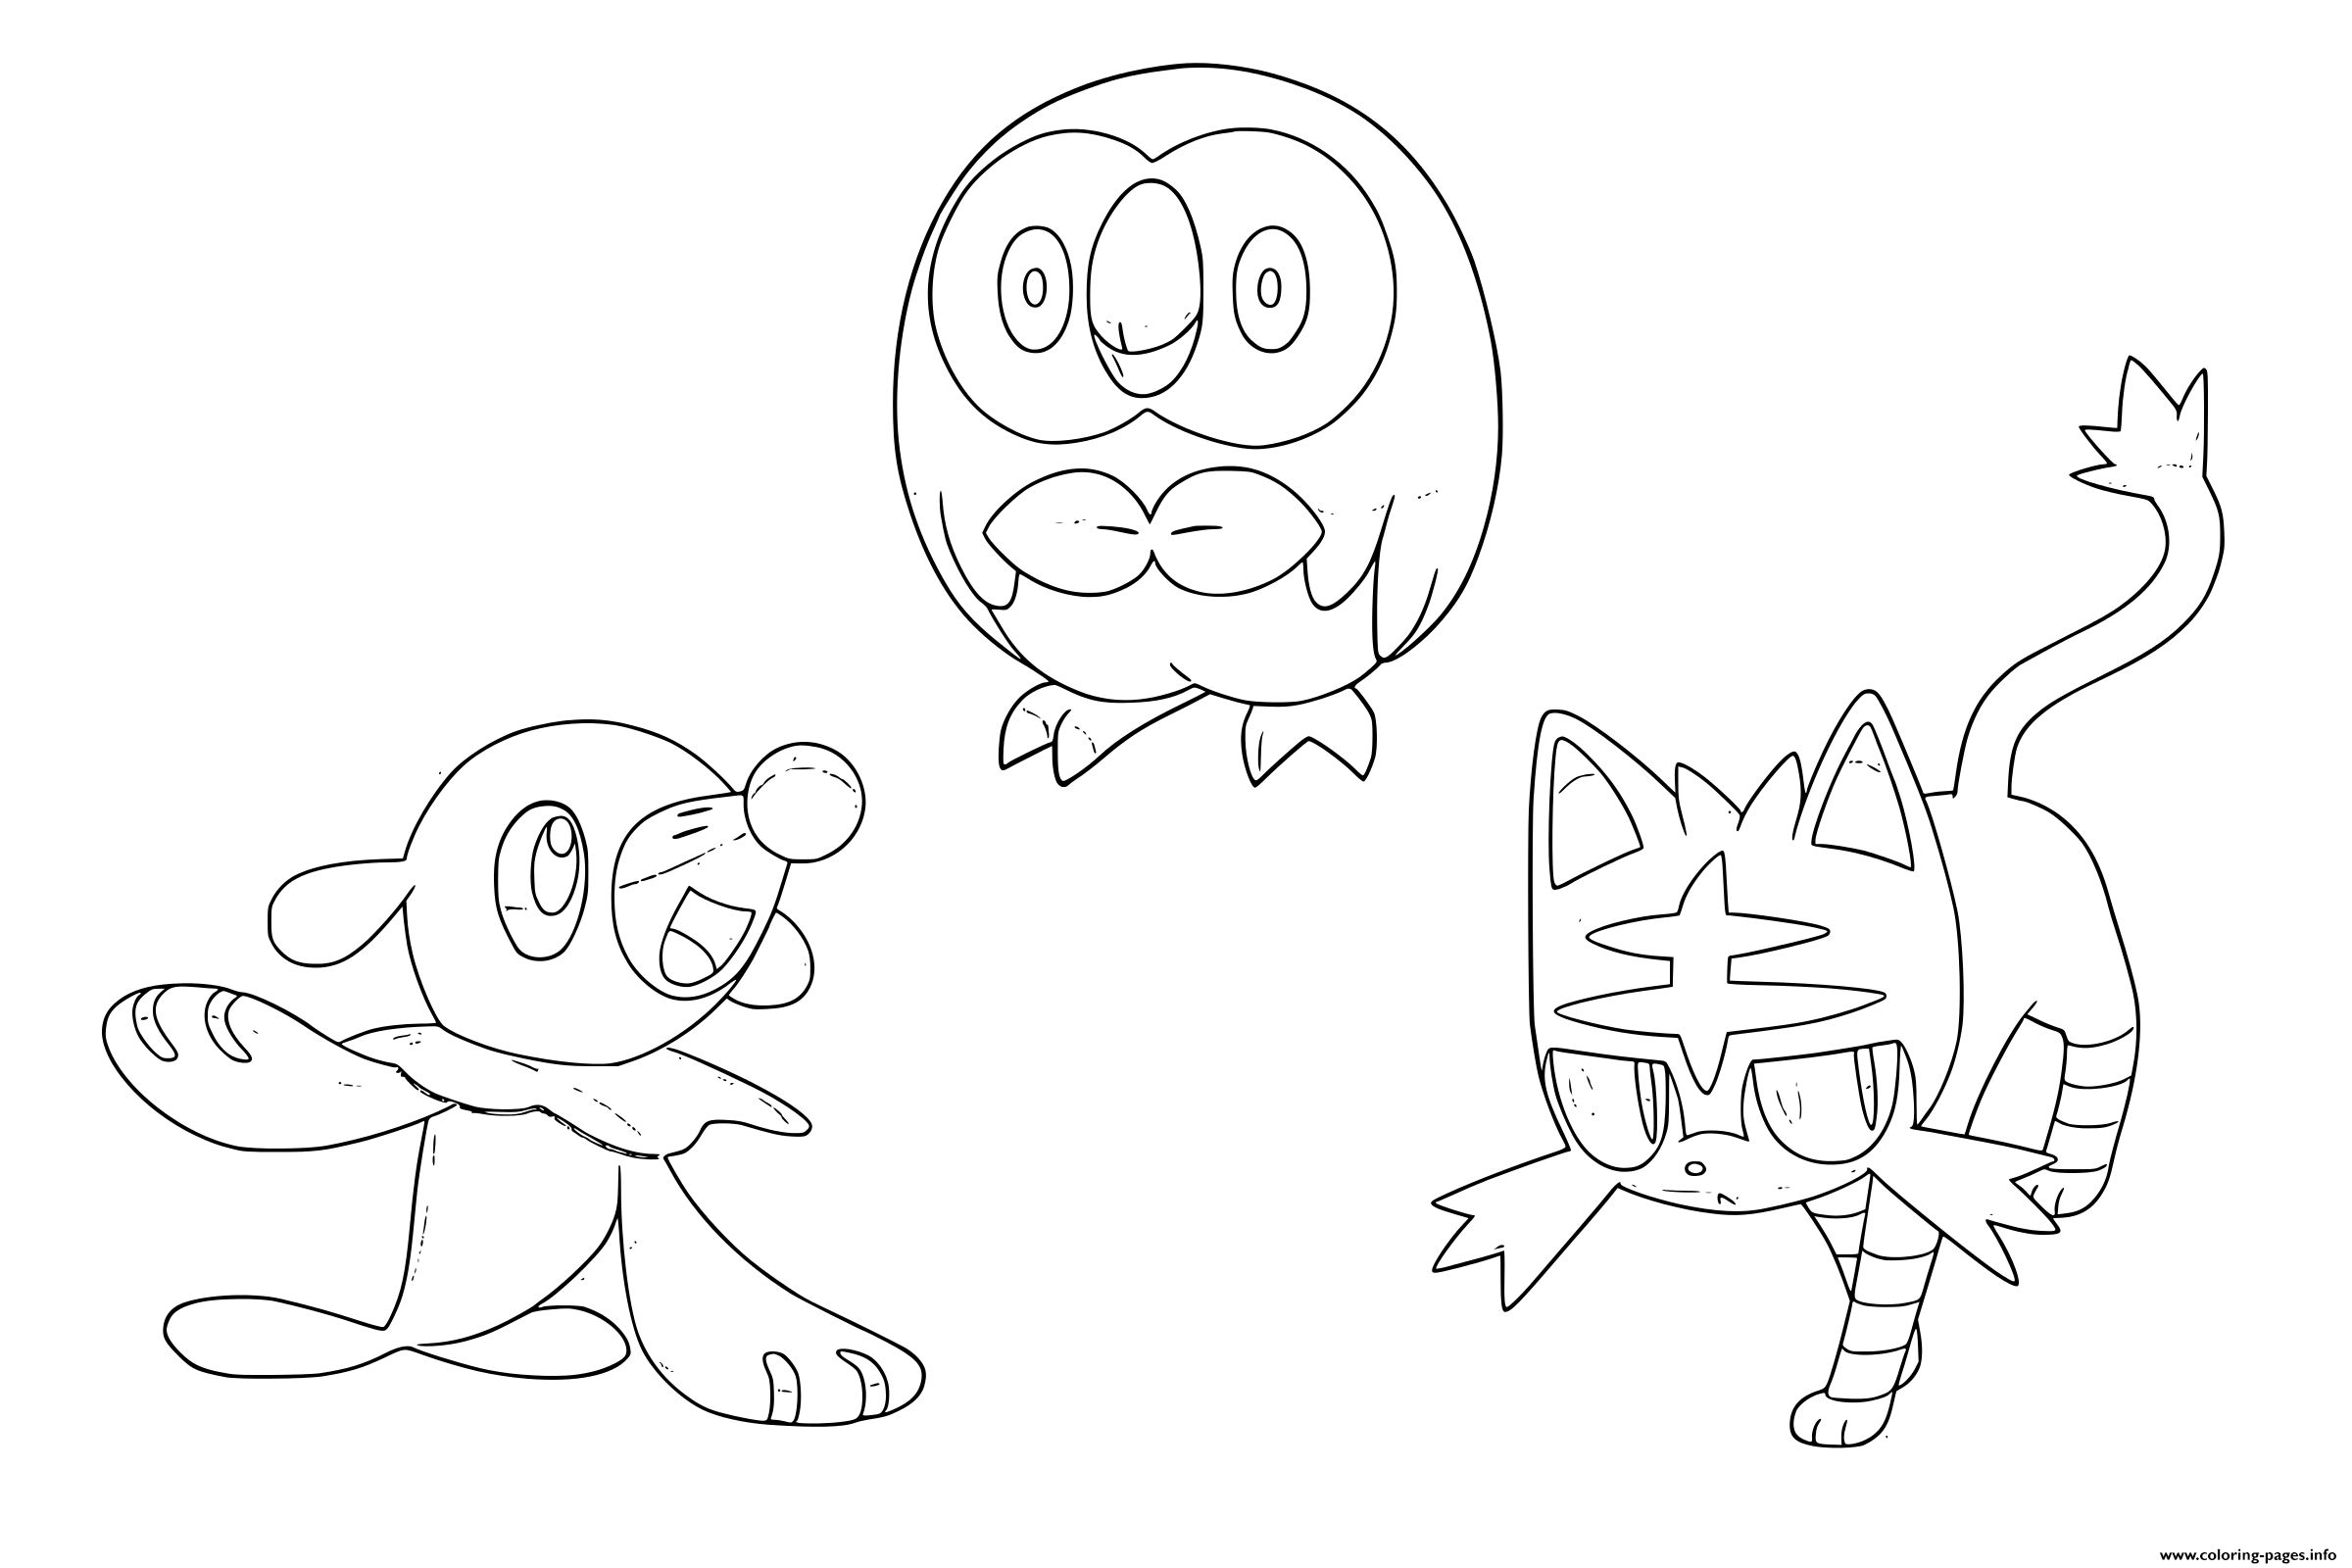 Pokemon Coloring Pages Sun And Moon Coloring Pages Allow Kids To Accompany Their Favorite Characters Pokemon Coloring Pokemon Coloring Pages Coloring Pages